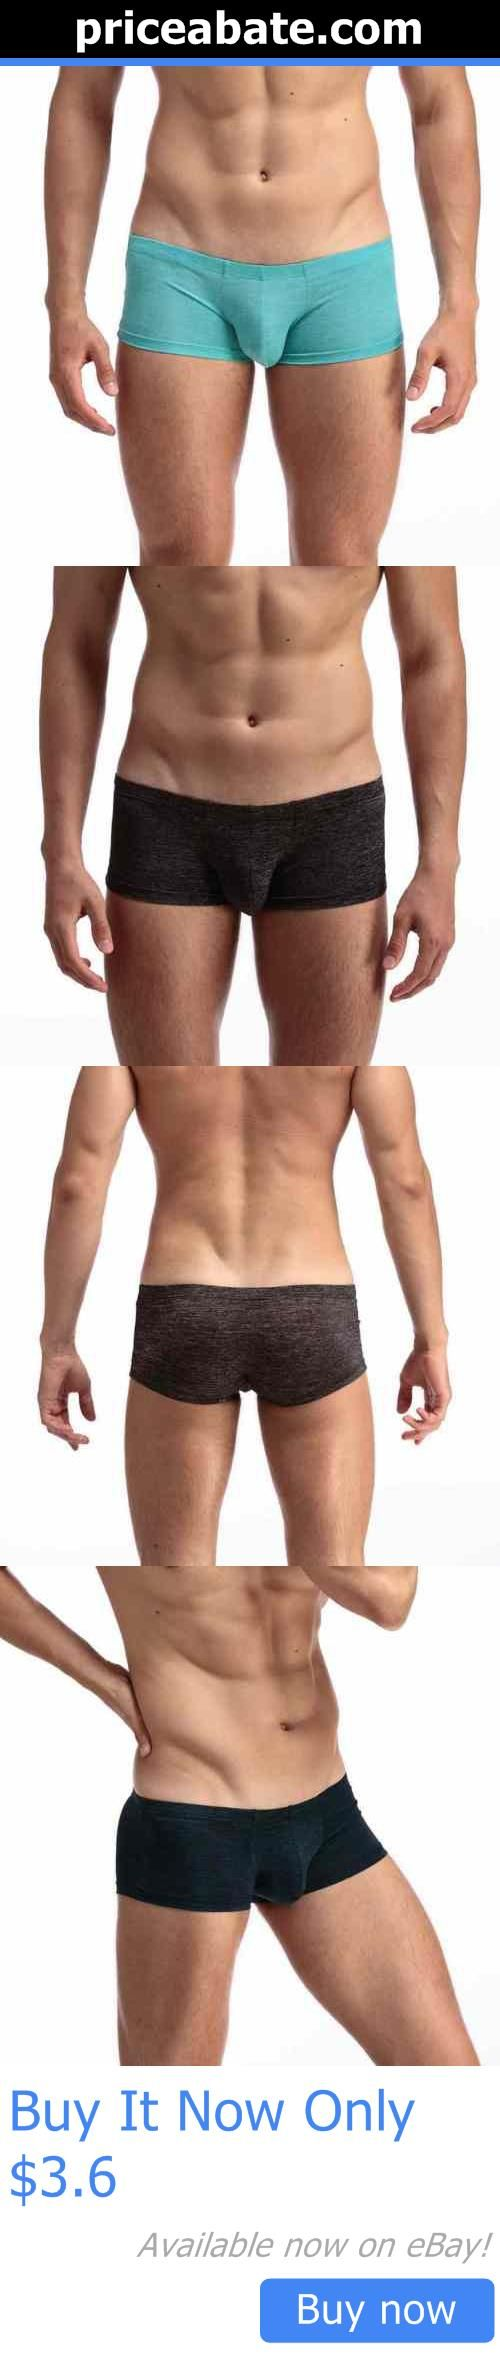 Man Underwear: Mens Underwear Boxer Briefs Cotton Bulge Pouch Trunks Shorts Underpants Pants BUY IT NOW ONLY: $3.6 #priceabateManUnderwear OR #priceabate